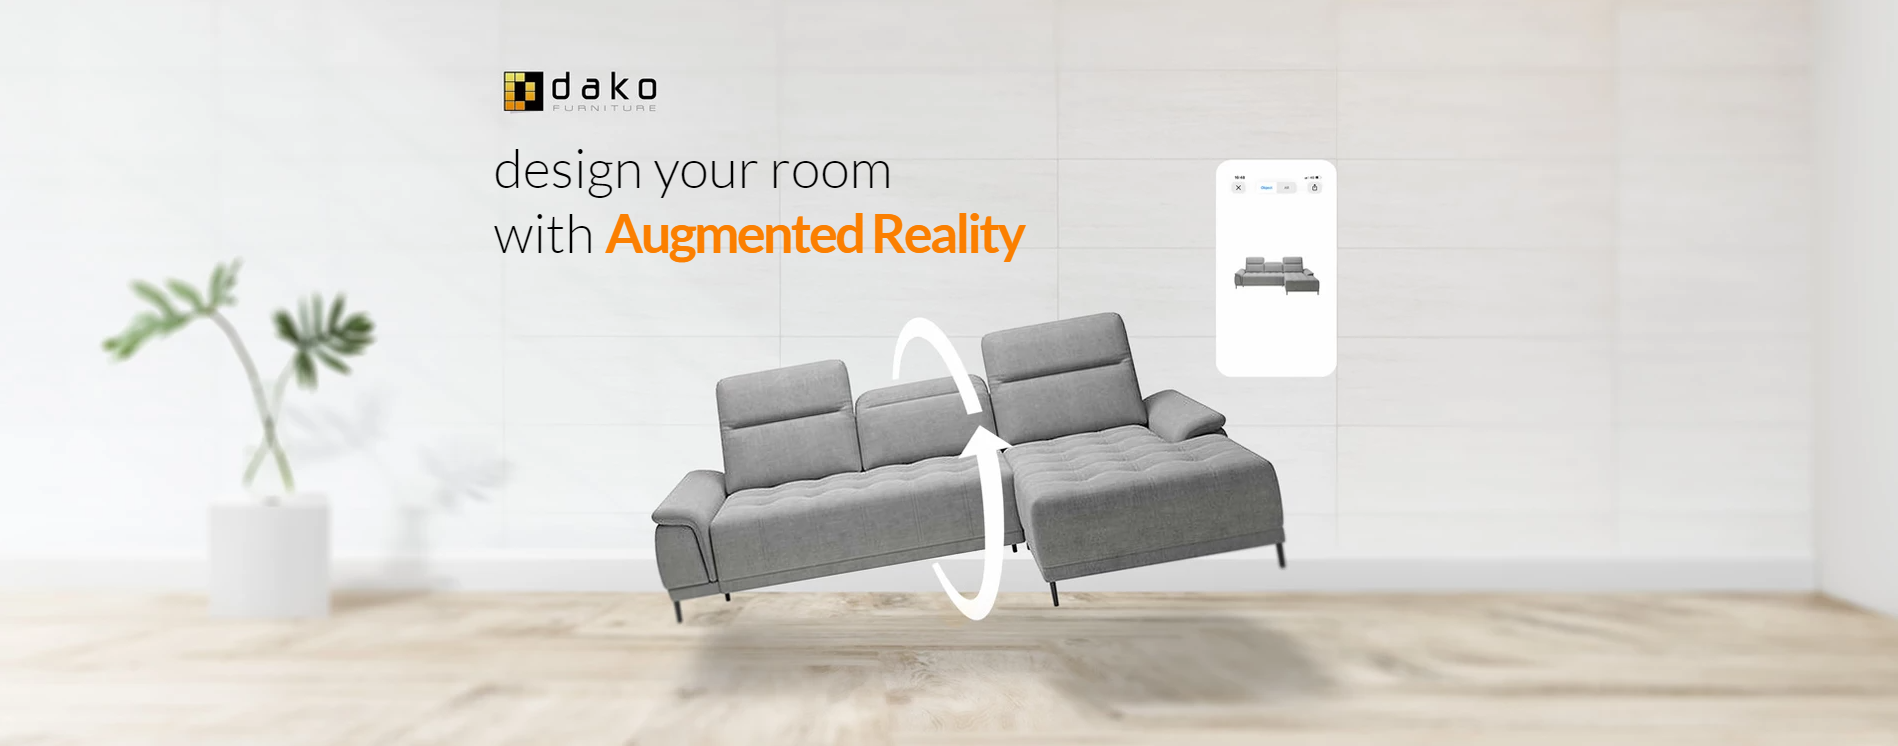 design your room with Augumented Reality